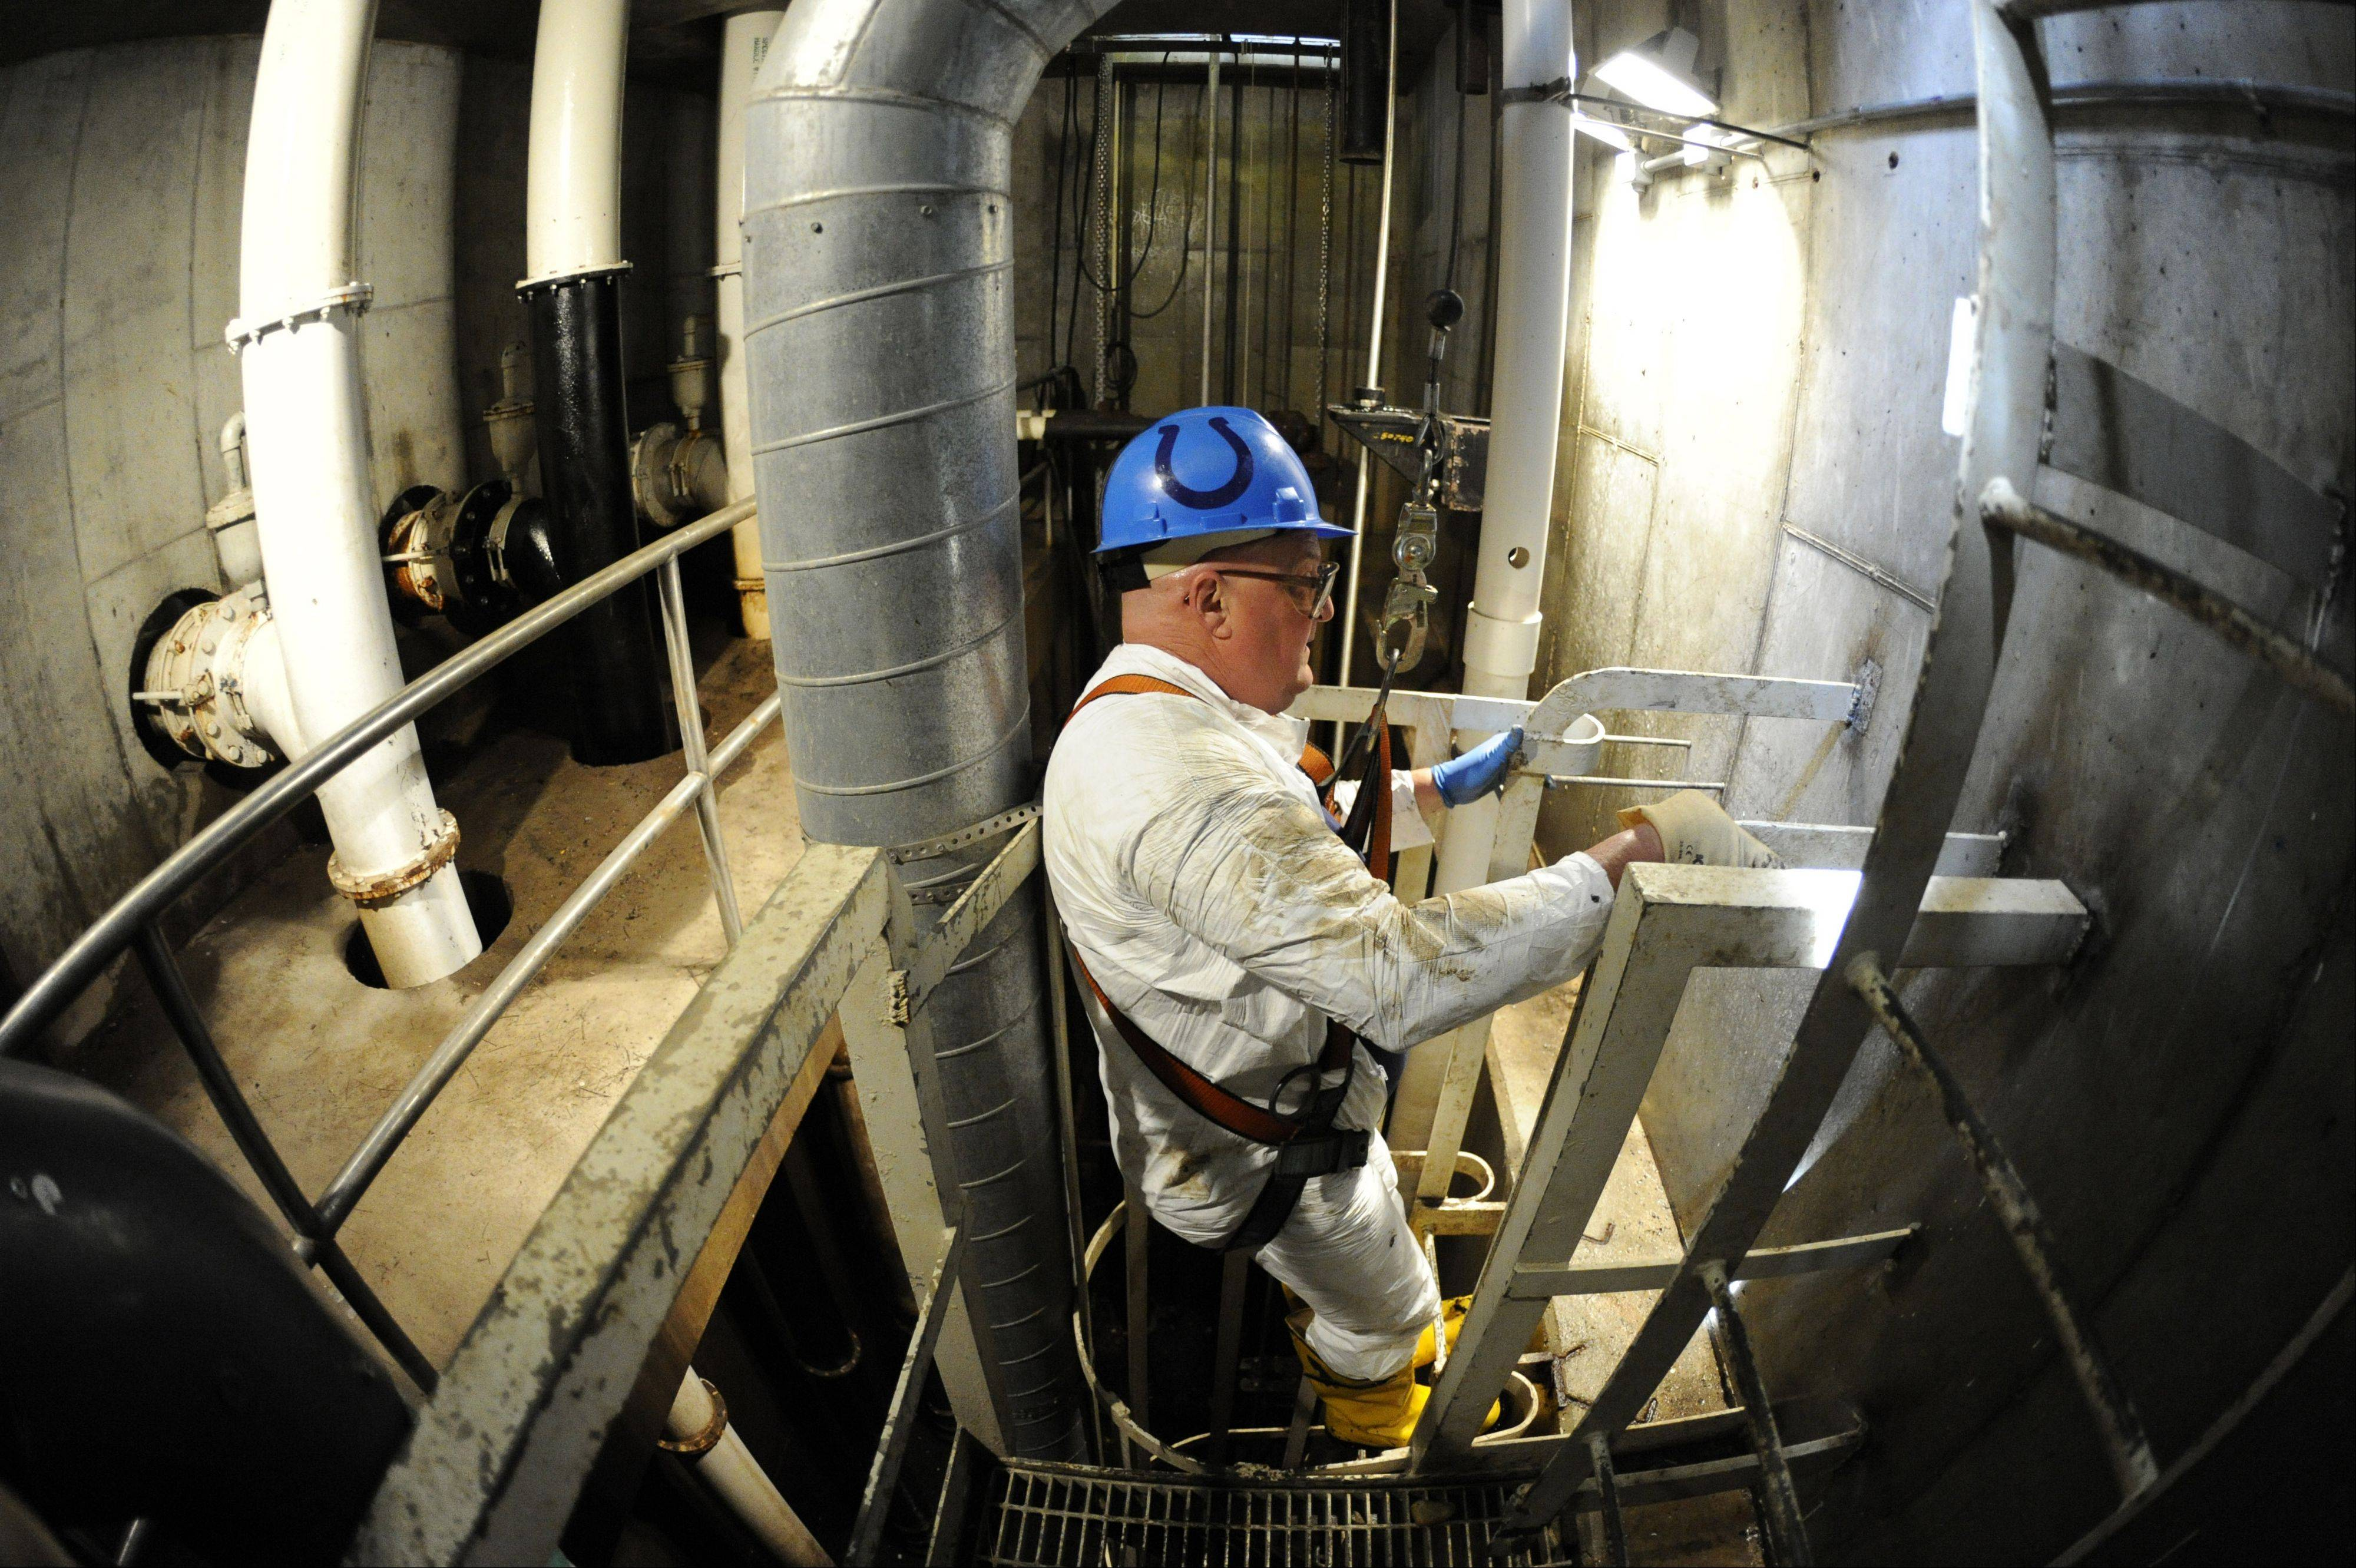 McNamara climbs down almost 40 feet underground into the storm water station located on the border of Arlington Heights and Mount Prospect getting ready to clean out around the pumps.